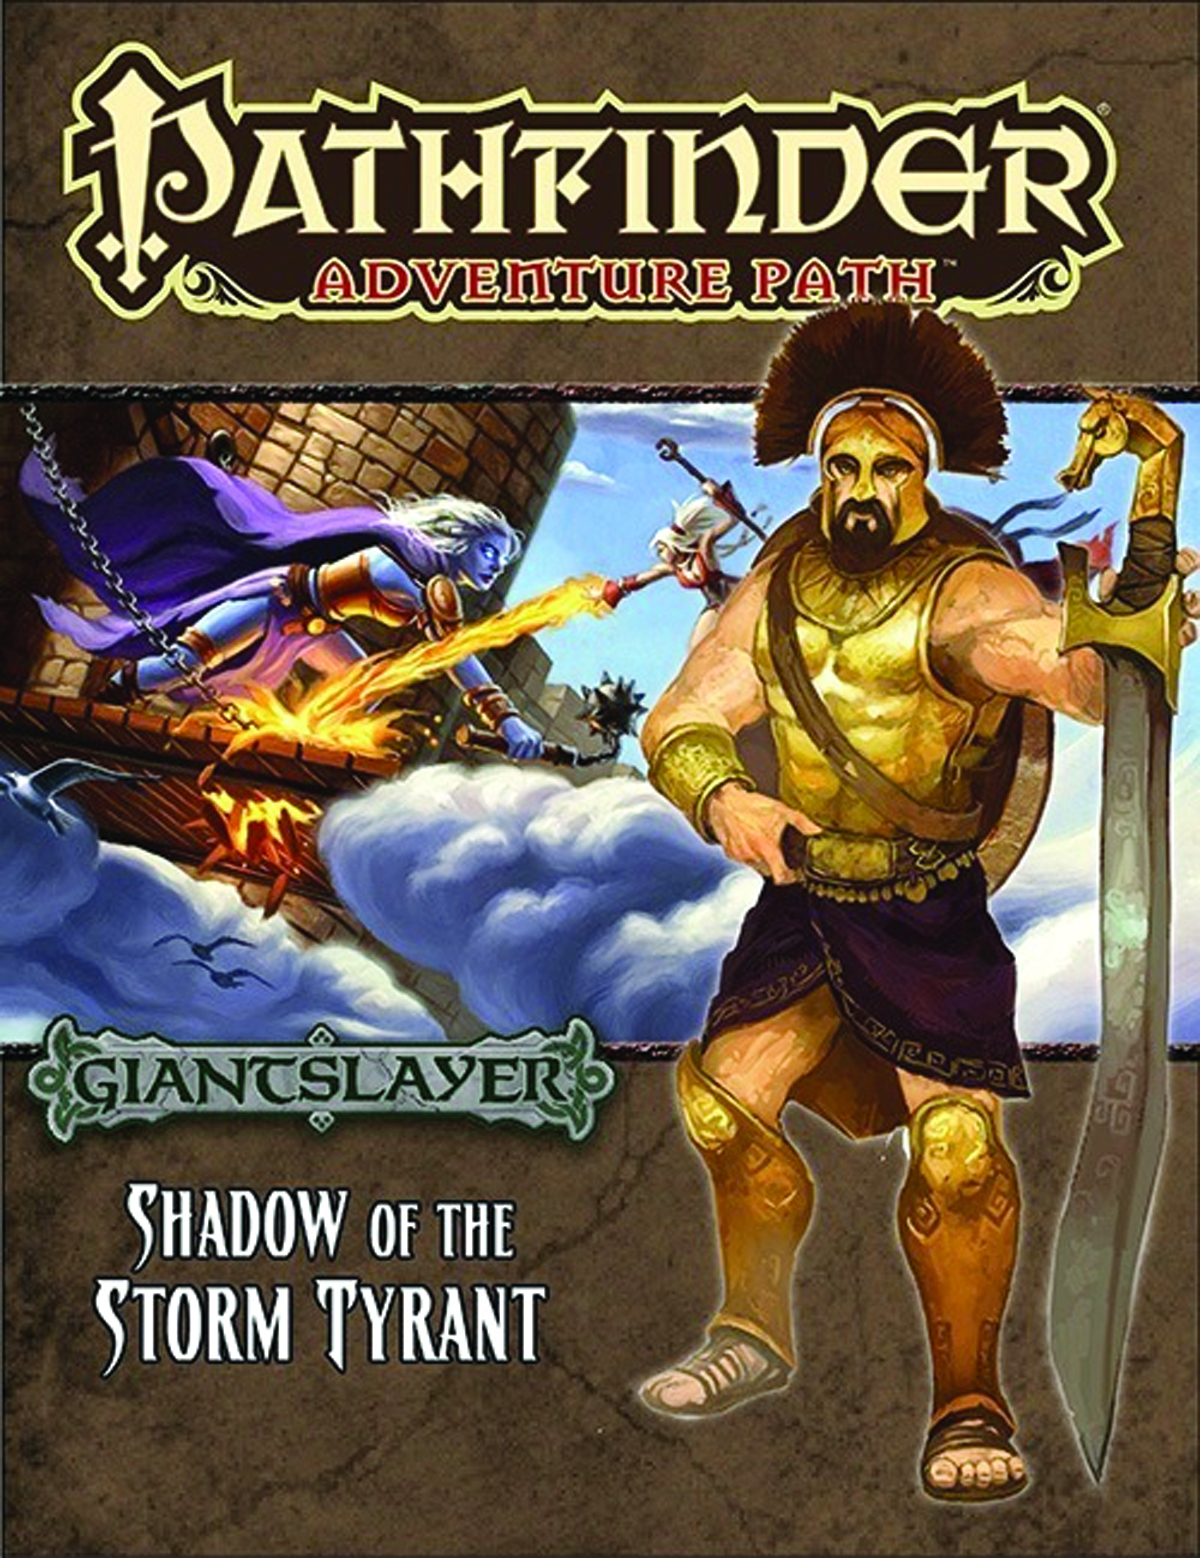 PATHFINDER ADV PATH GIANTSLAYER PT 6